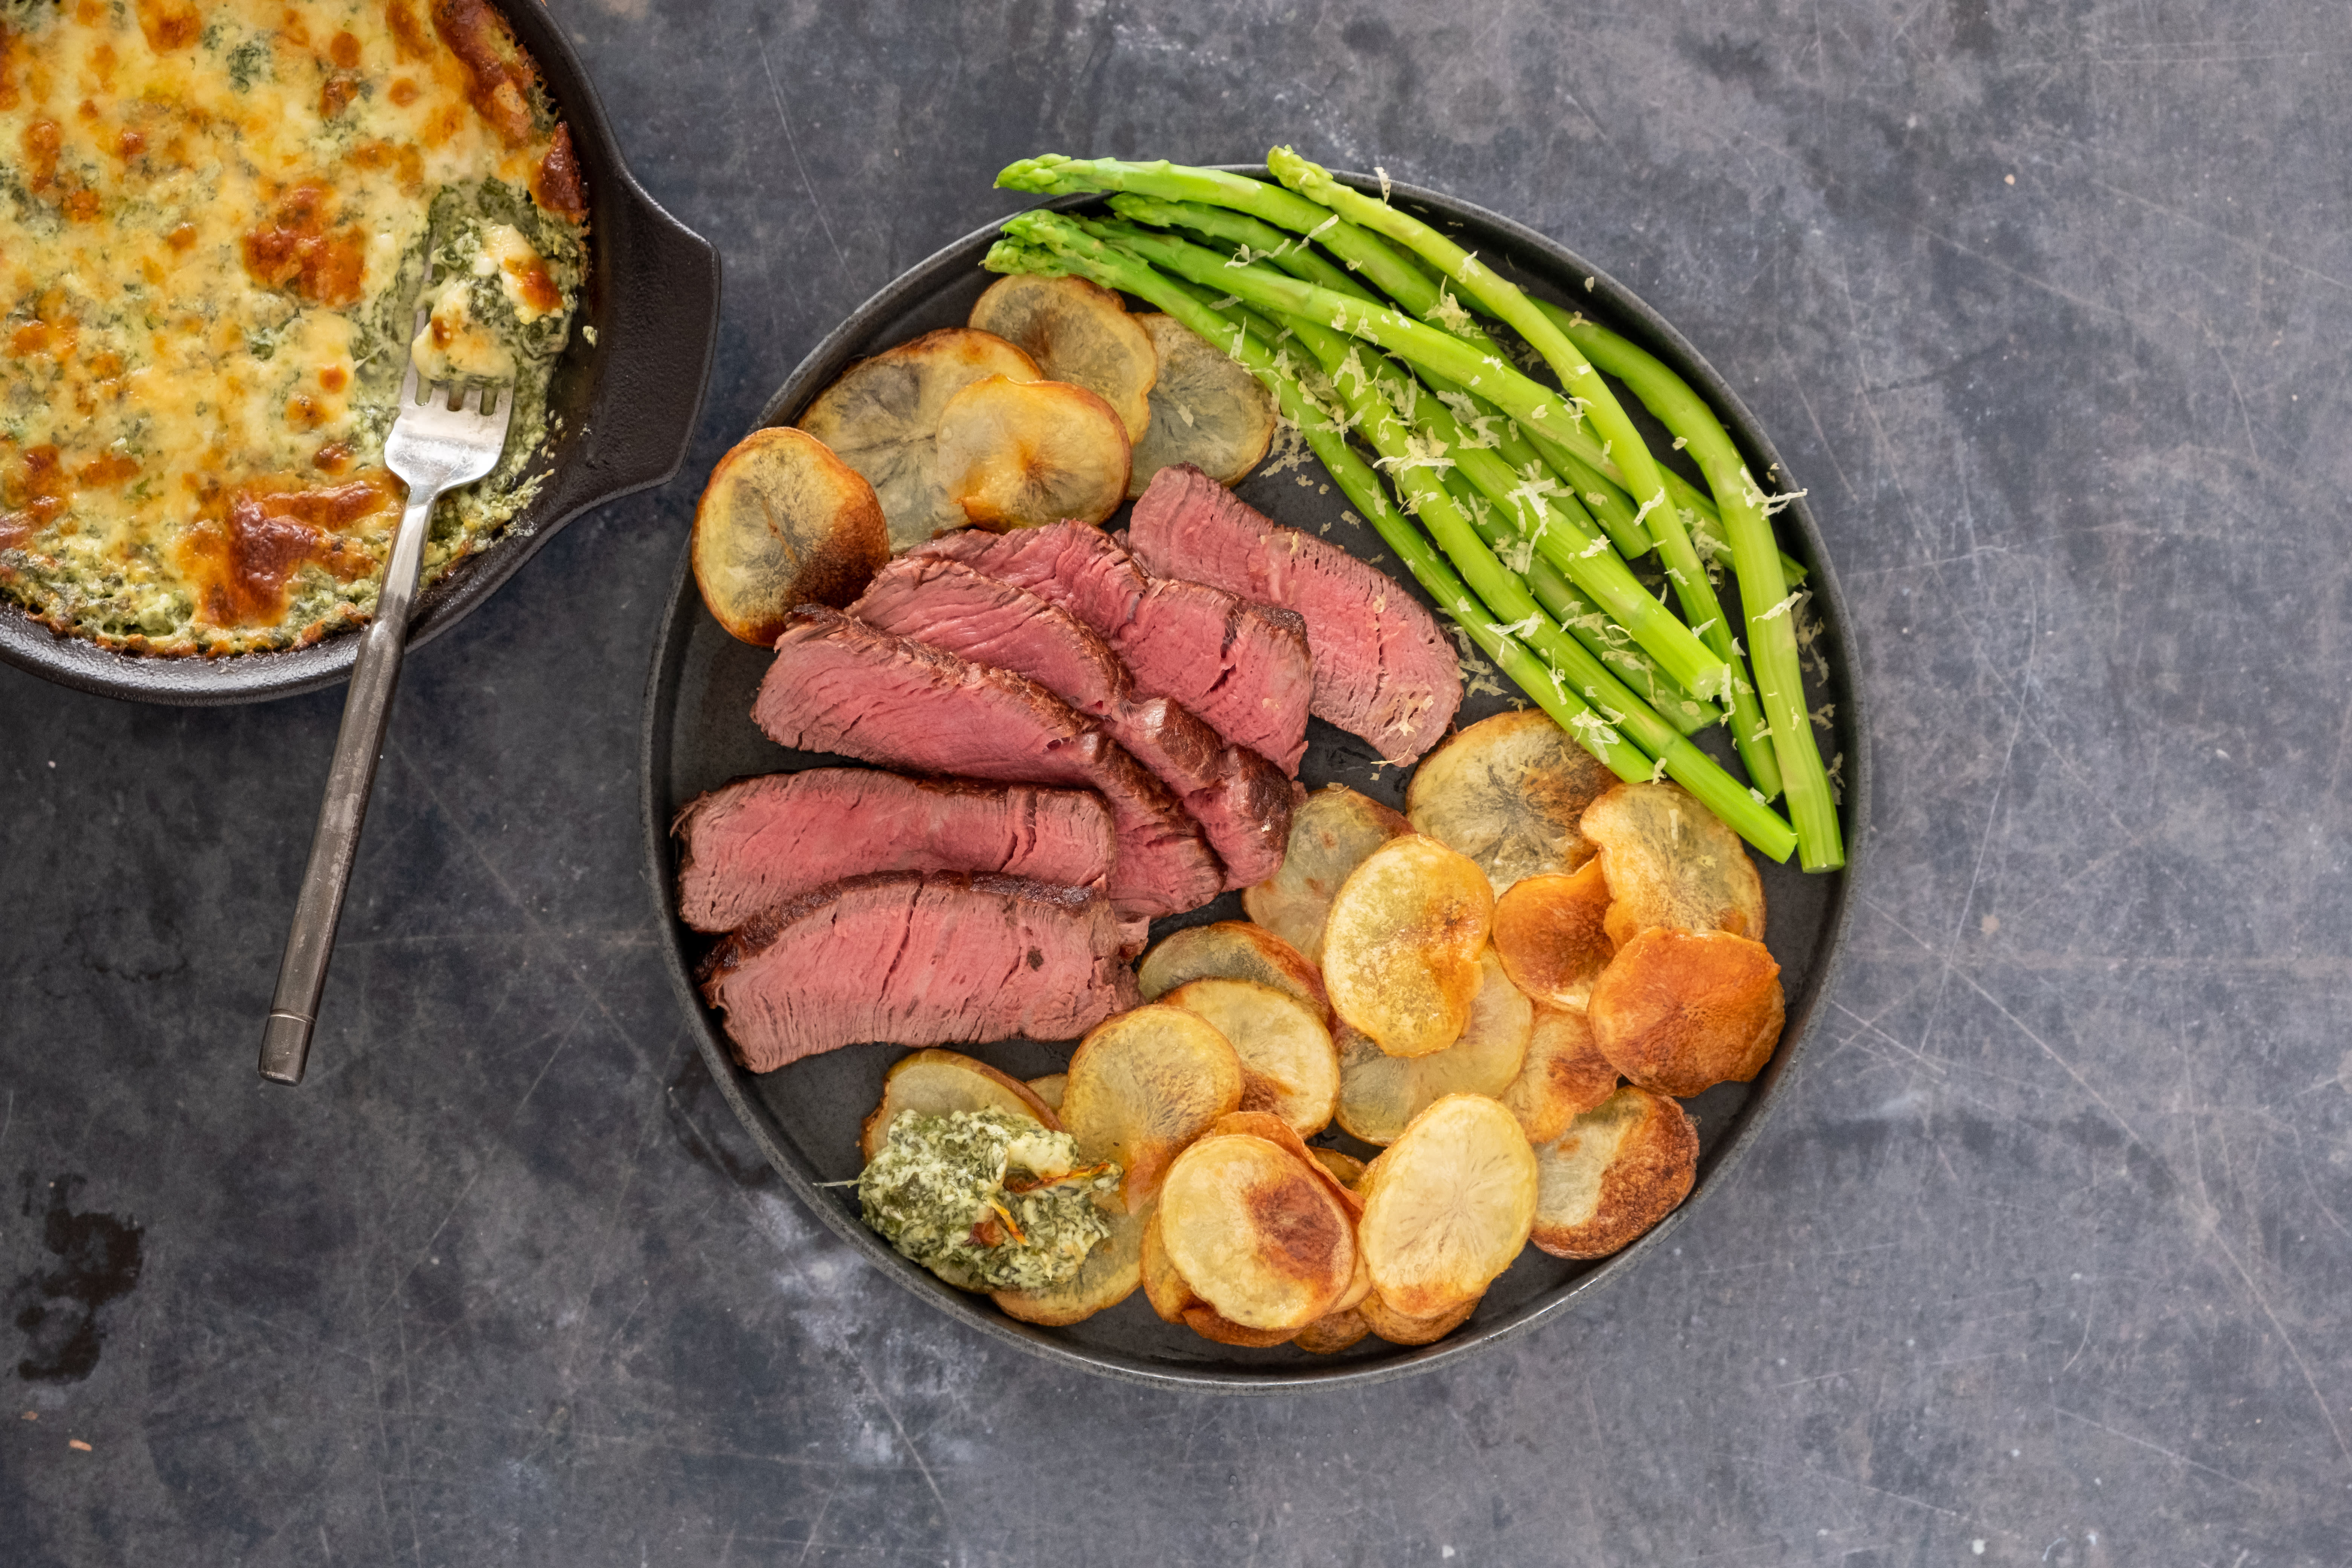 9 oz Fillet Steak and Cheesy Spinach Dip with Roasted Potato Discs and Asparagus